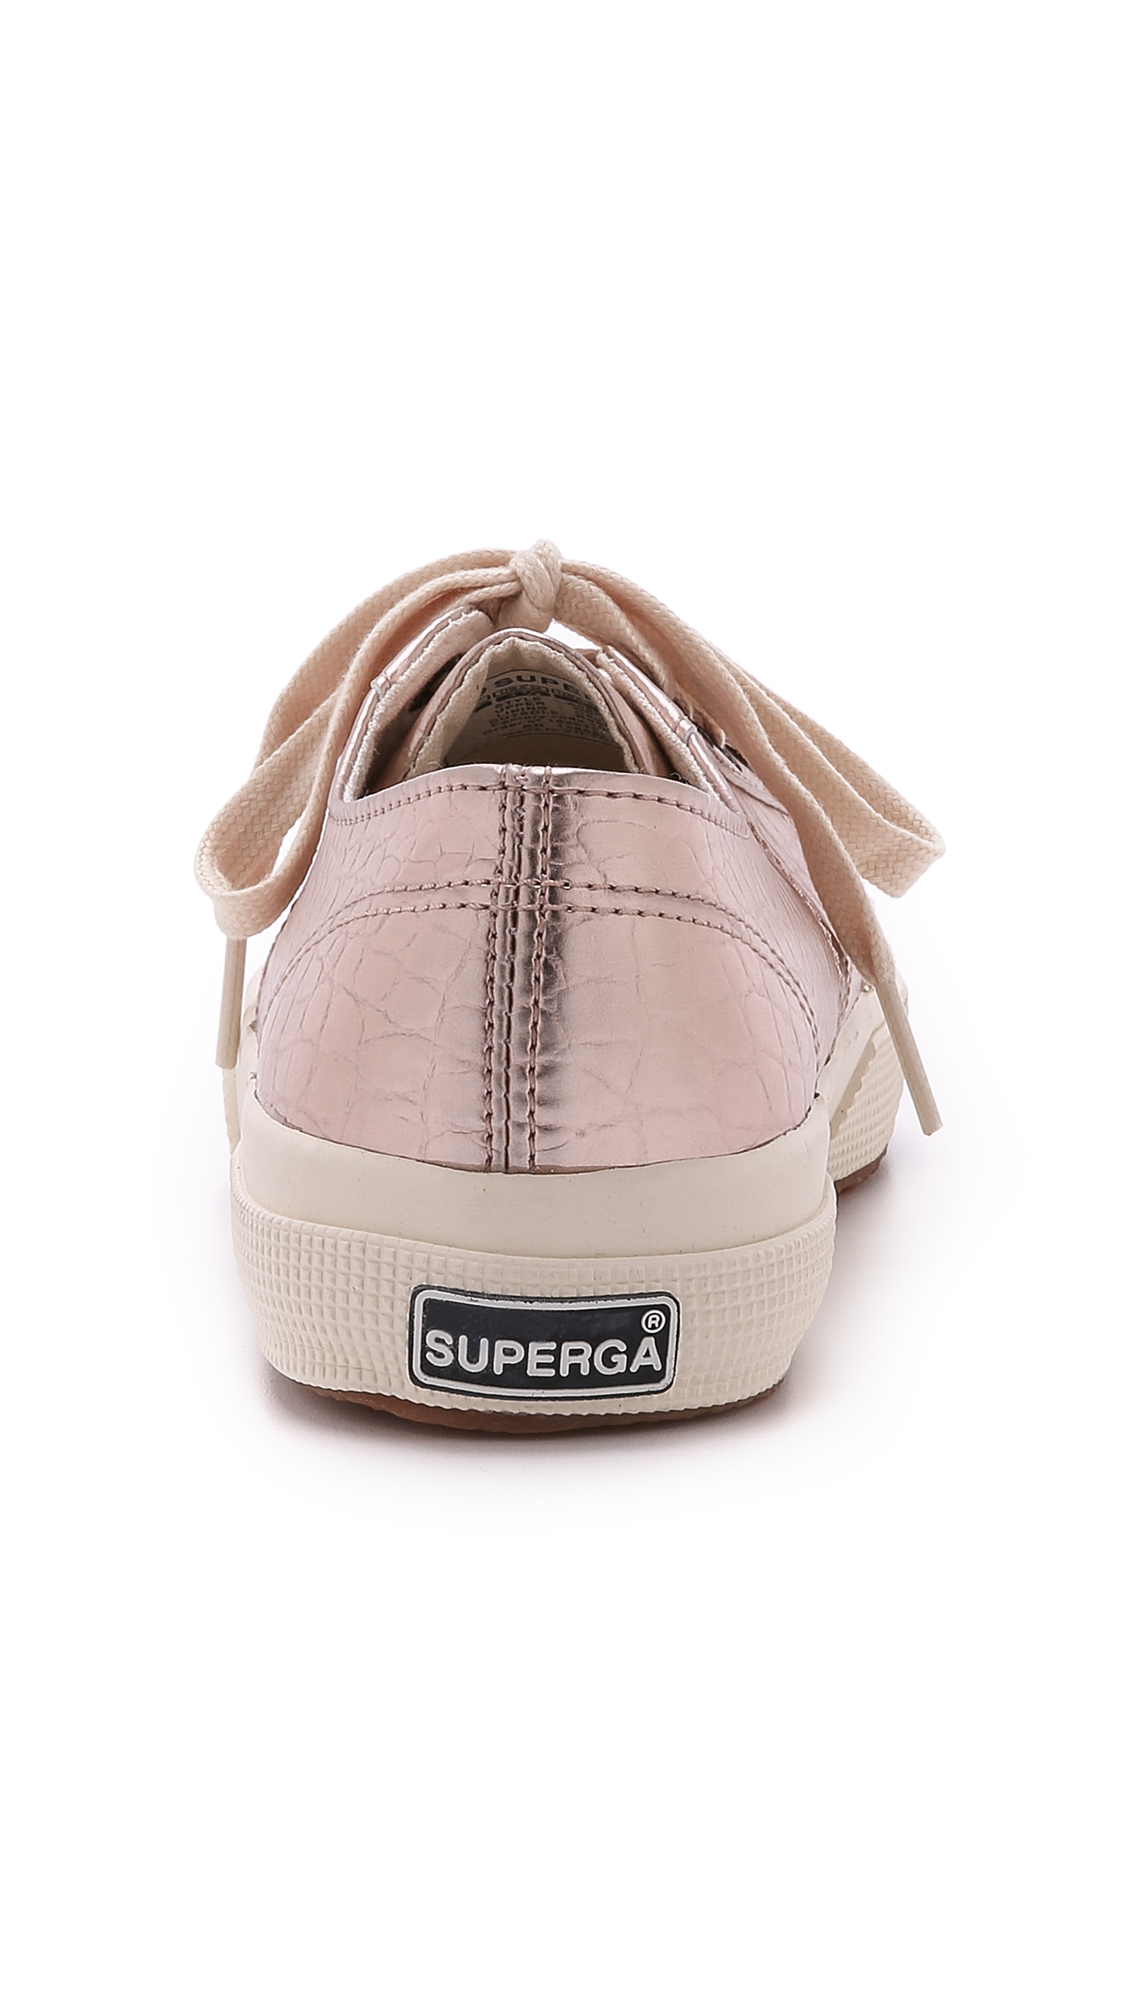 lyst superga cotu metallic croc sneakers rose gold in pink. Black Bedroom Furniture Sets. Home Design Ideas